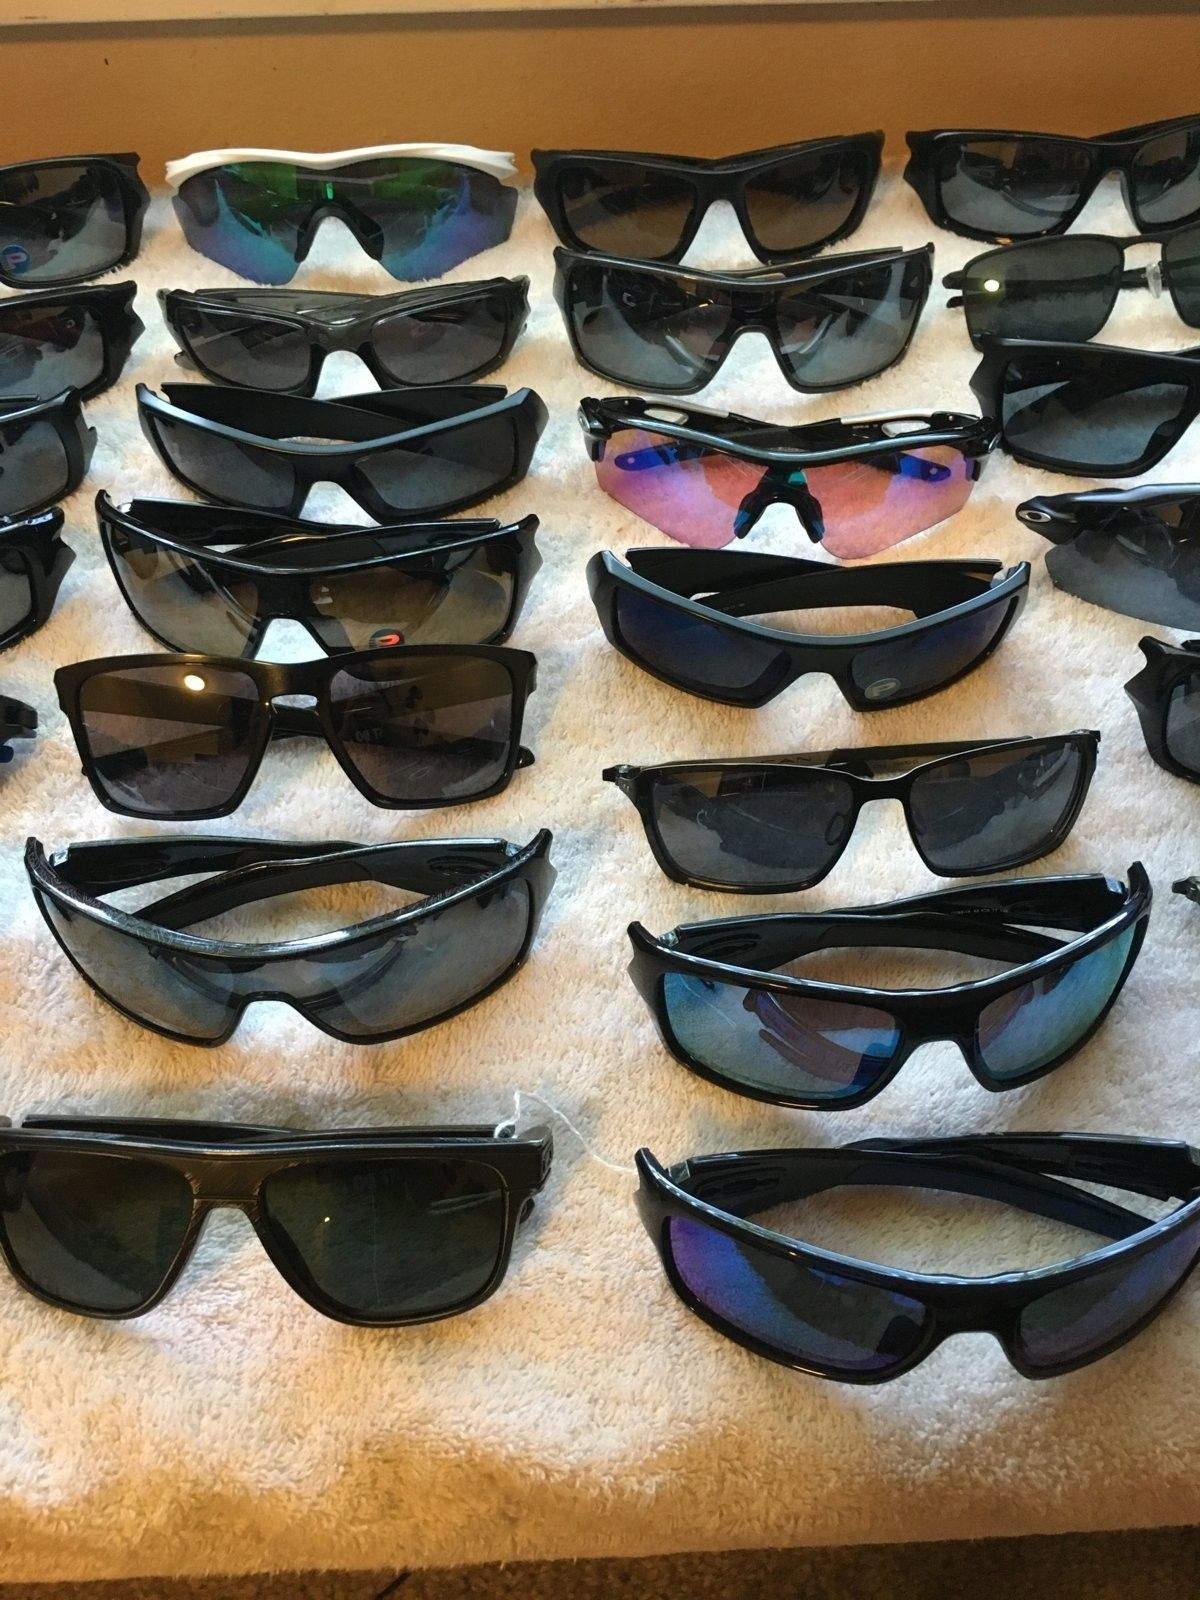 LOTS OF OAKLEYS, GREAT PRICES! - IMG_1728.JPG